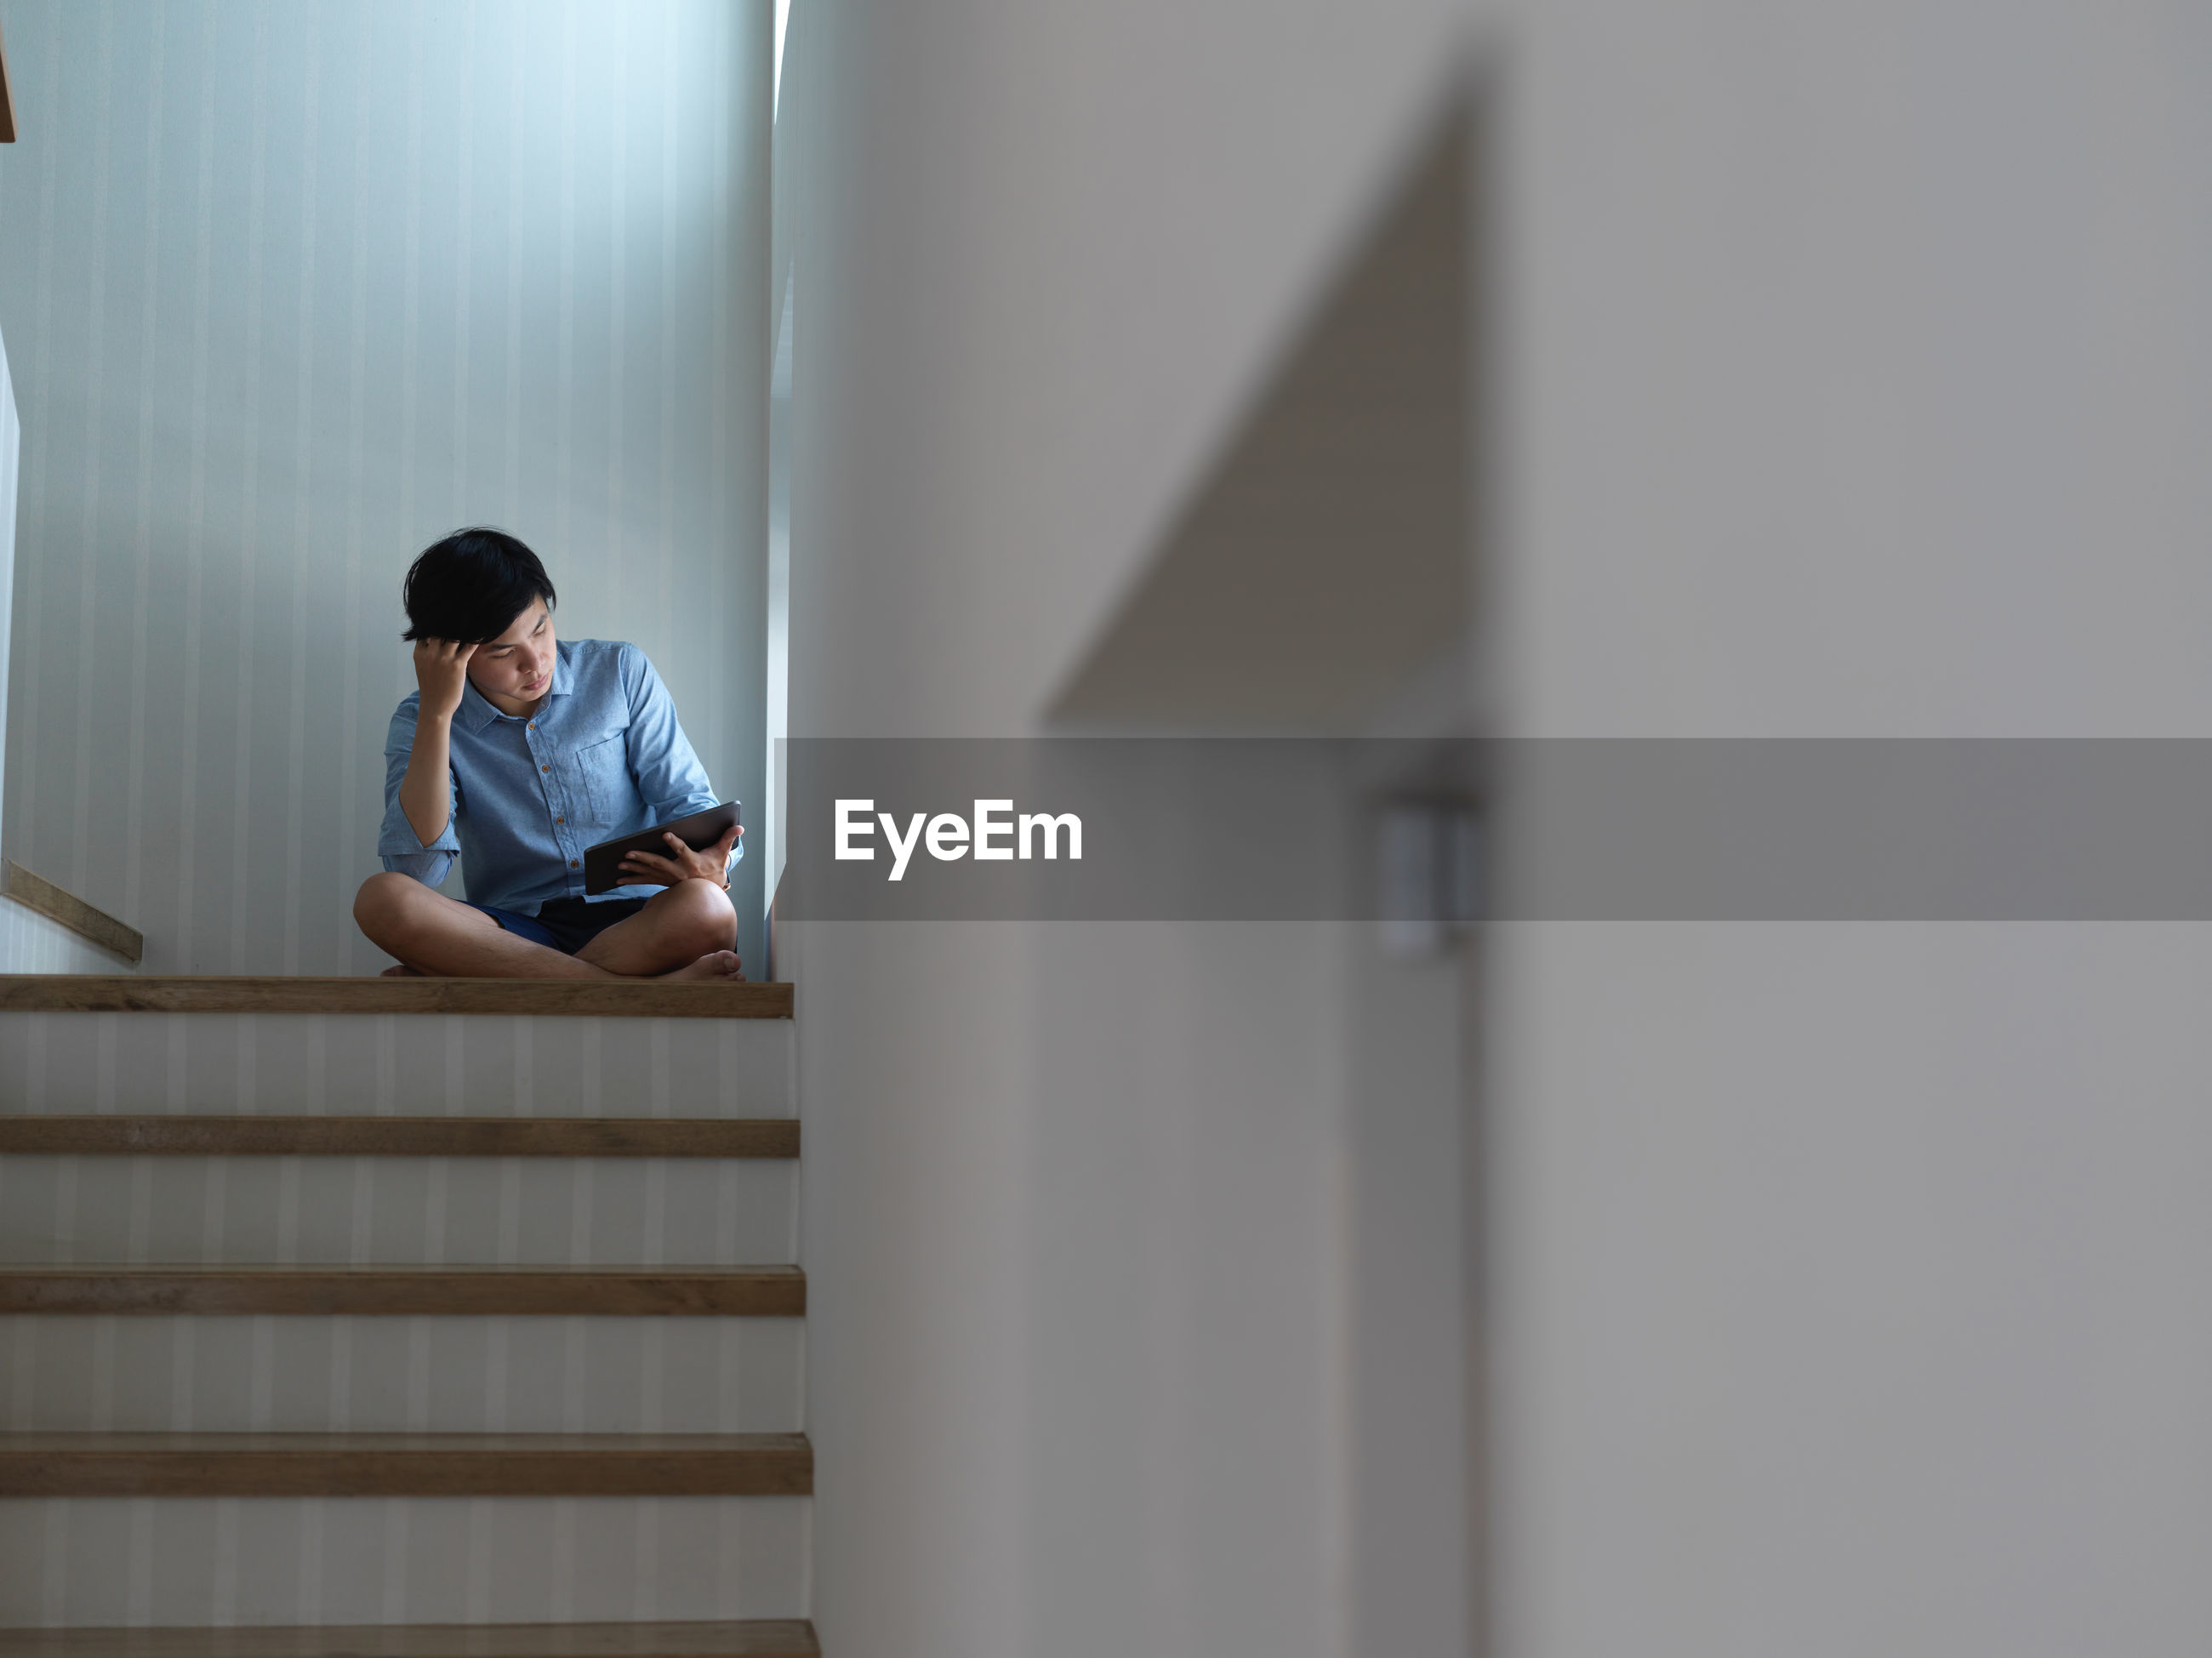 Low angel view of young man holding digital tablet sitting on staircase